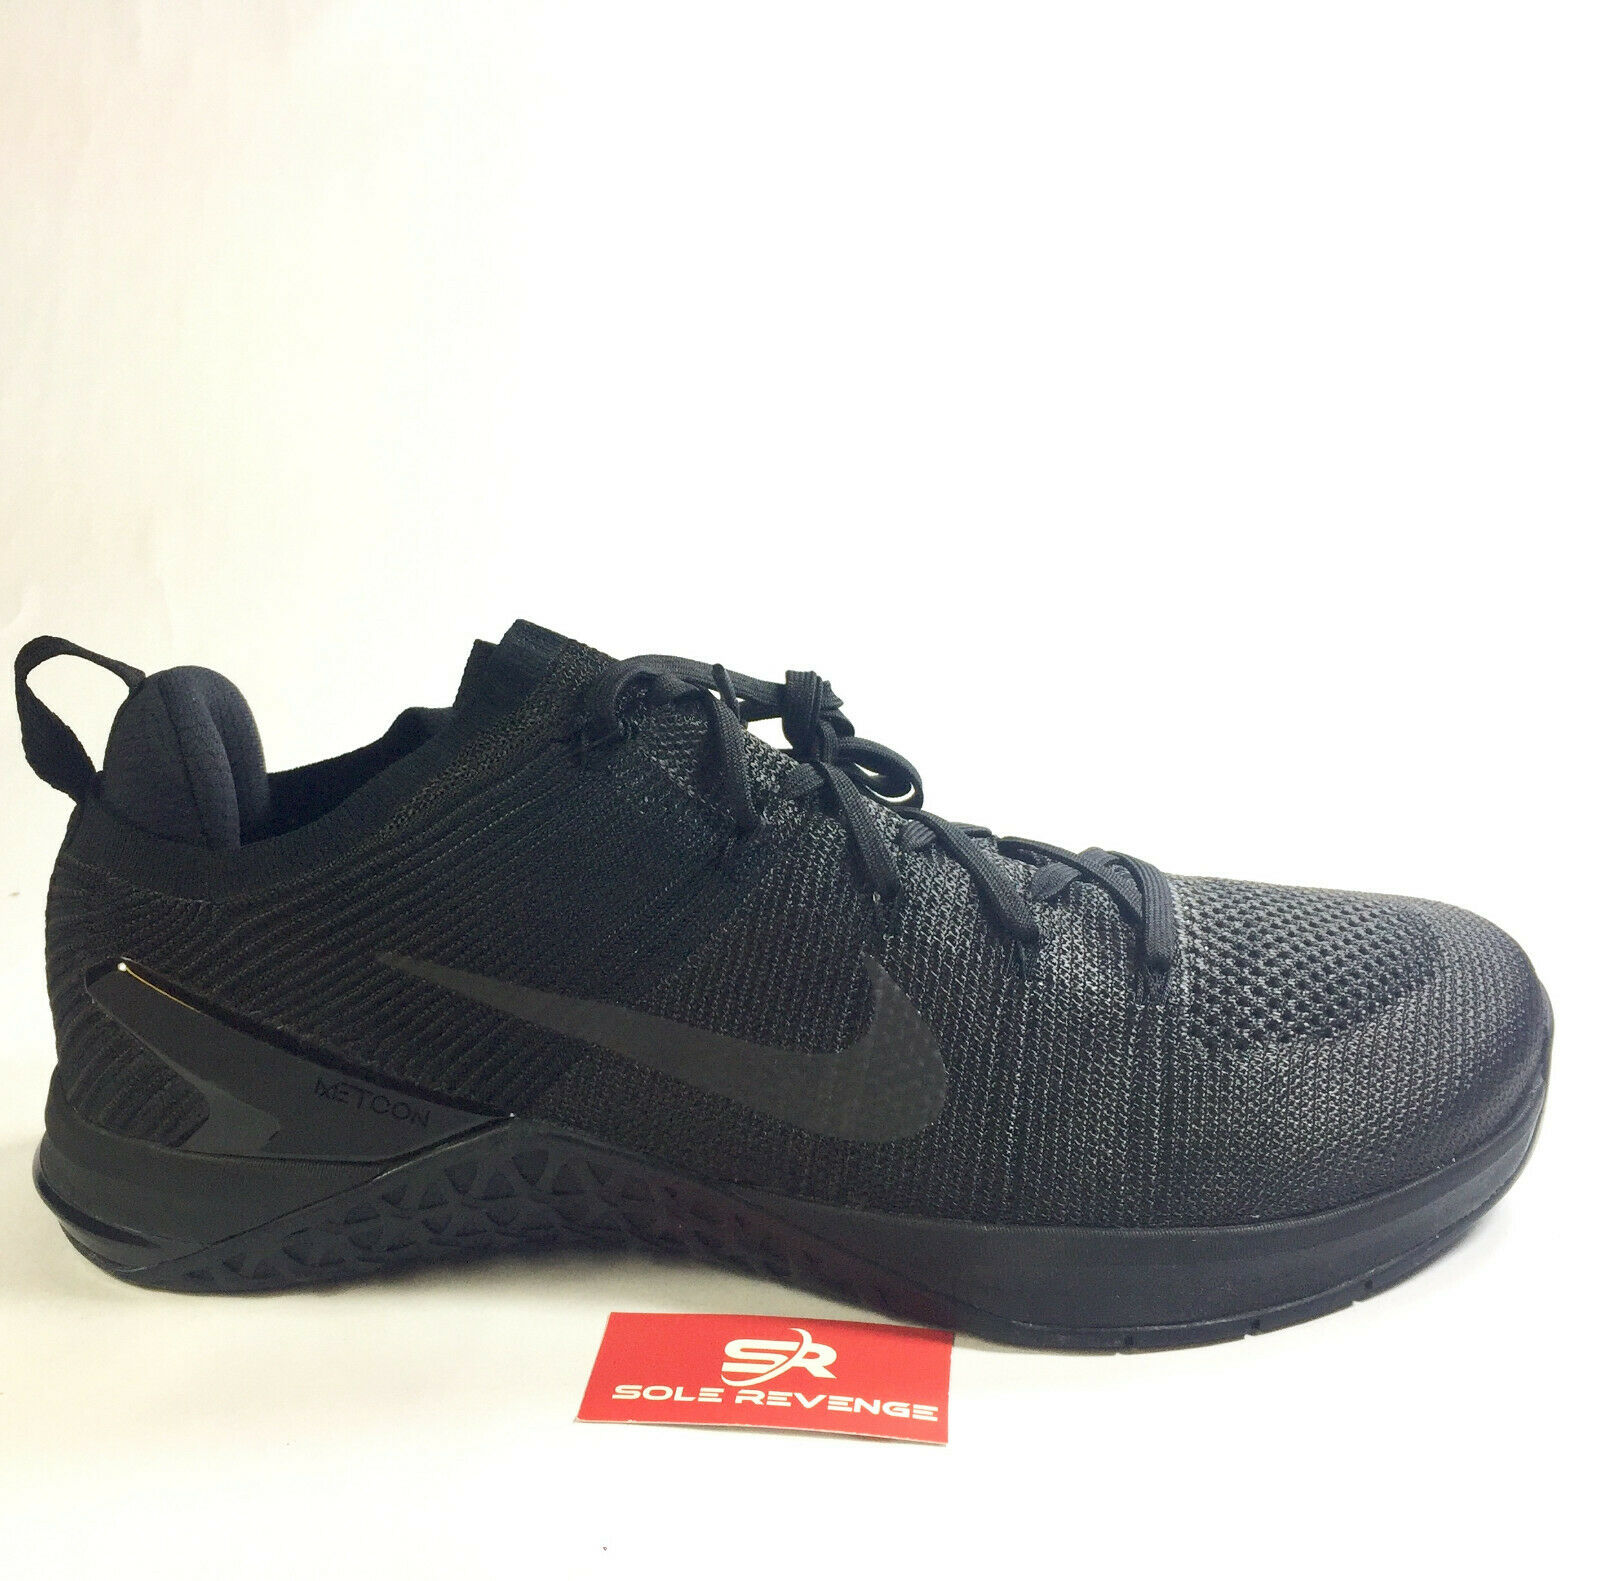 NEW Nike Metcon DSX Flyknit 2 - Men's Triple Black Training shoes 924423-004